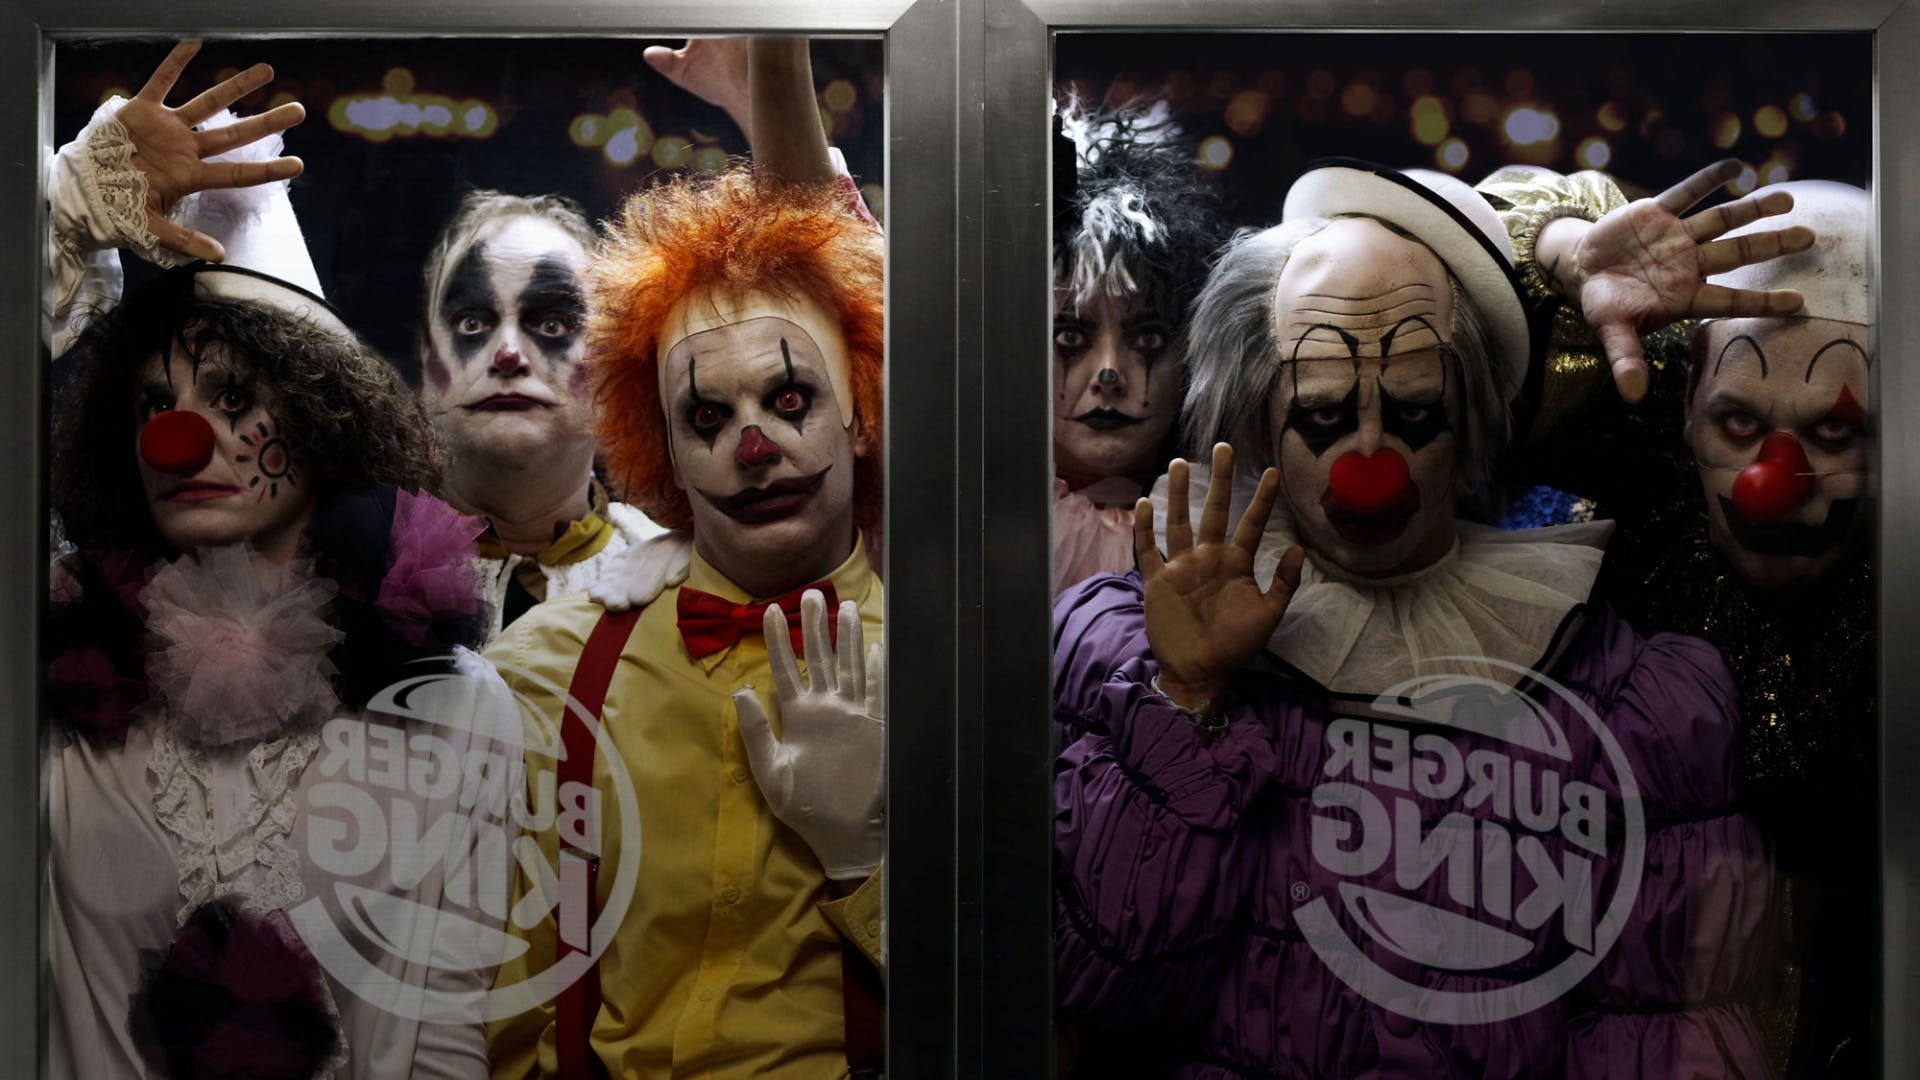 Burger King Scary Clown Night campaign